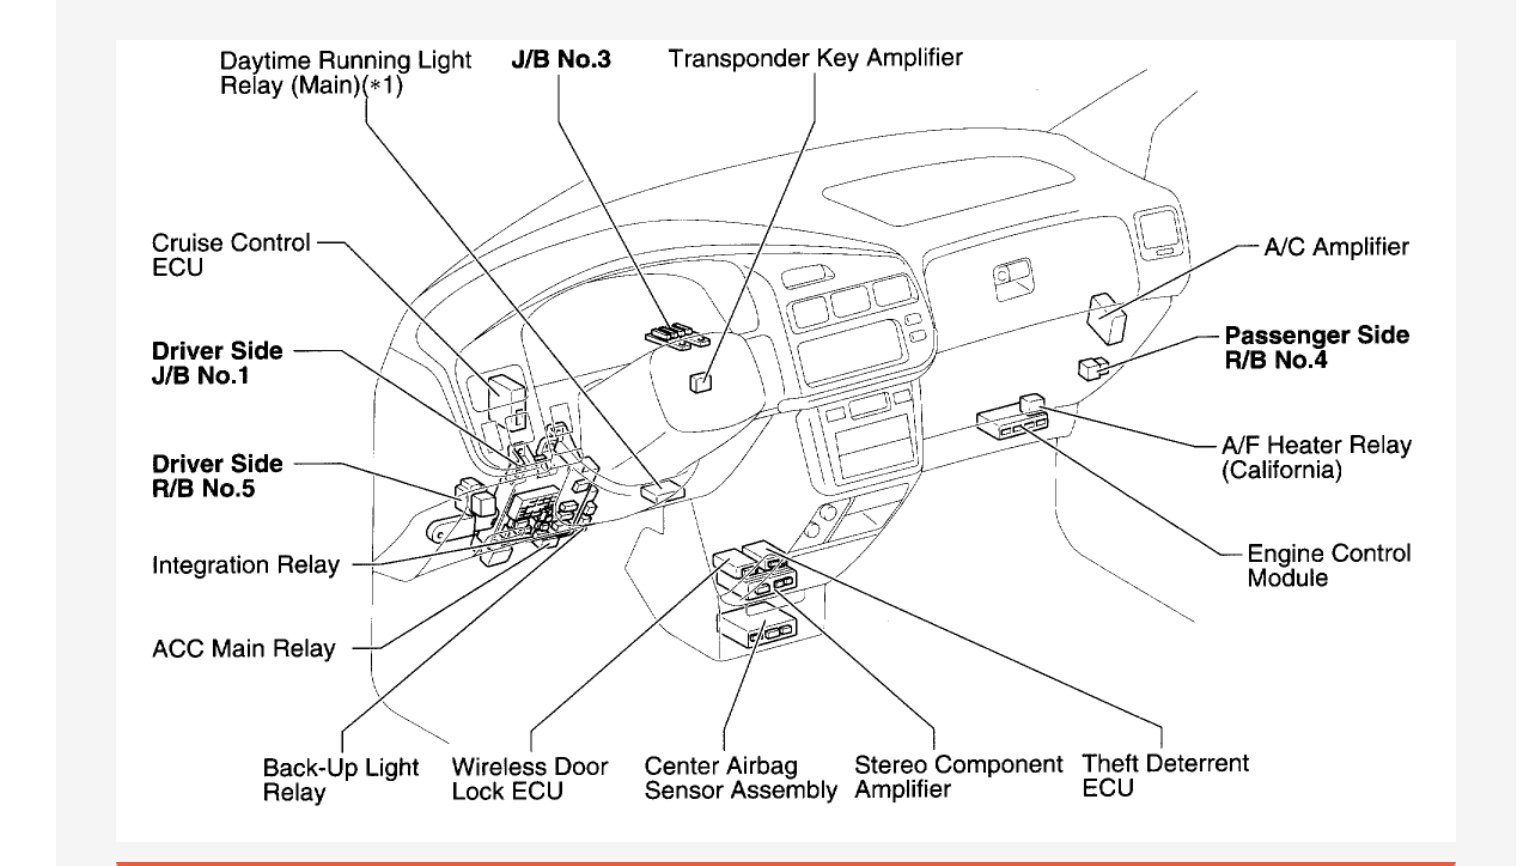 A/C 5amp fuse 2001 sienna. Not where it's suppose to be. | Toyota Nation  Forum  Toyota Nation